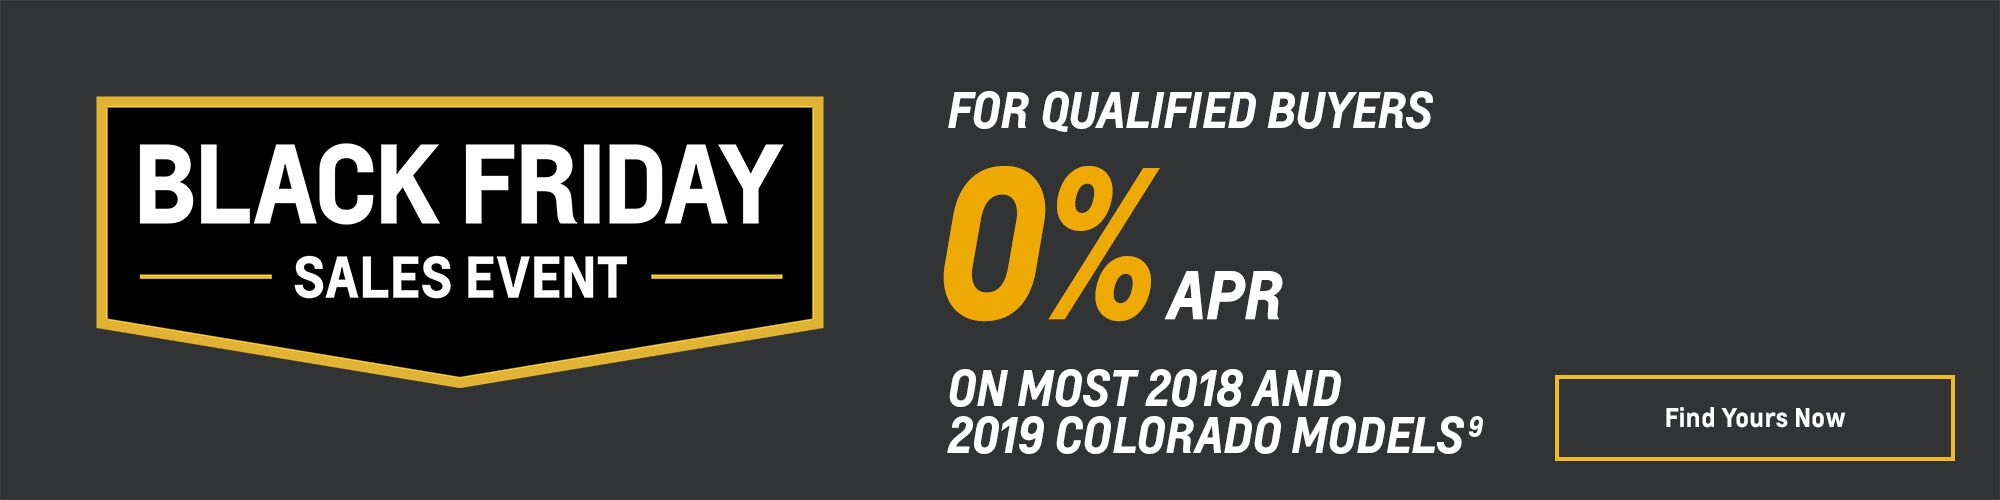 Black Friday Chevy Deals and Offers: Colorado 0% APR